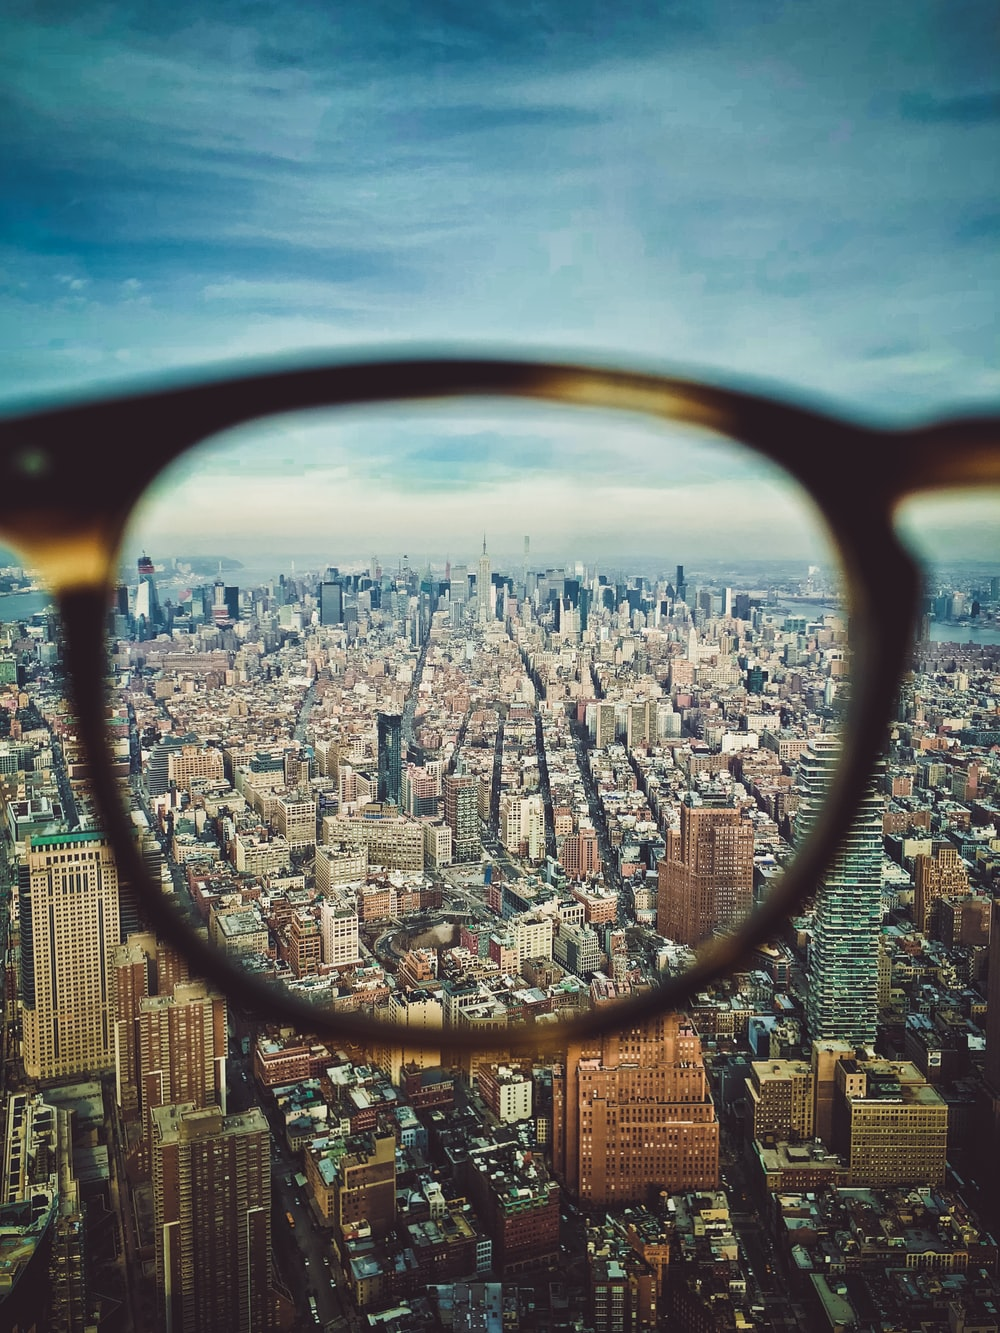 city buildings on eyeglasses view